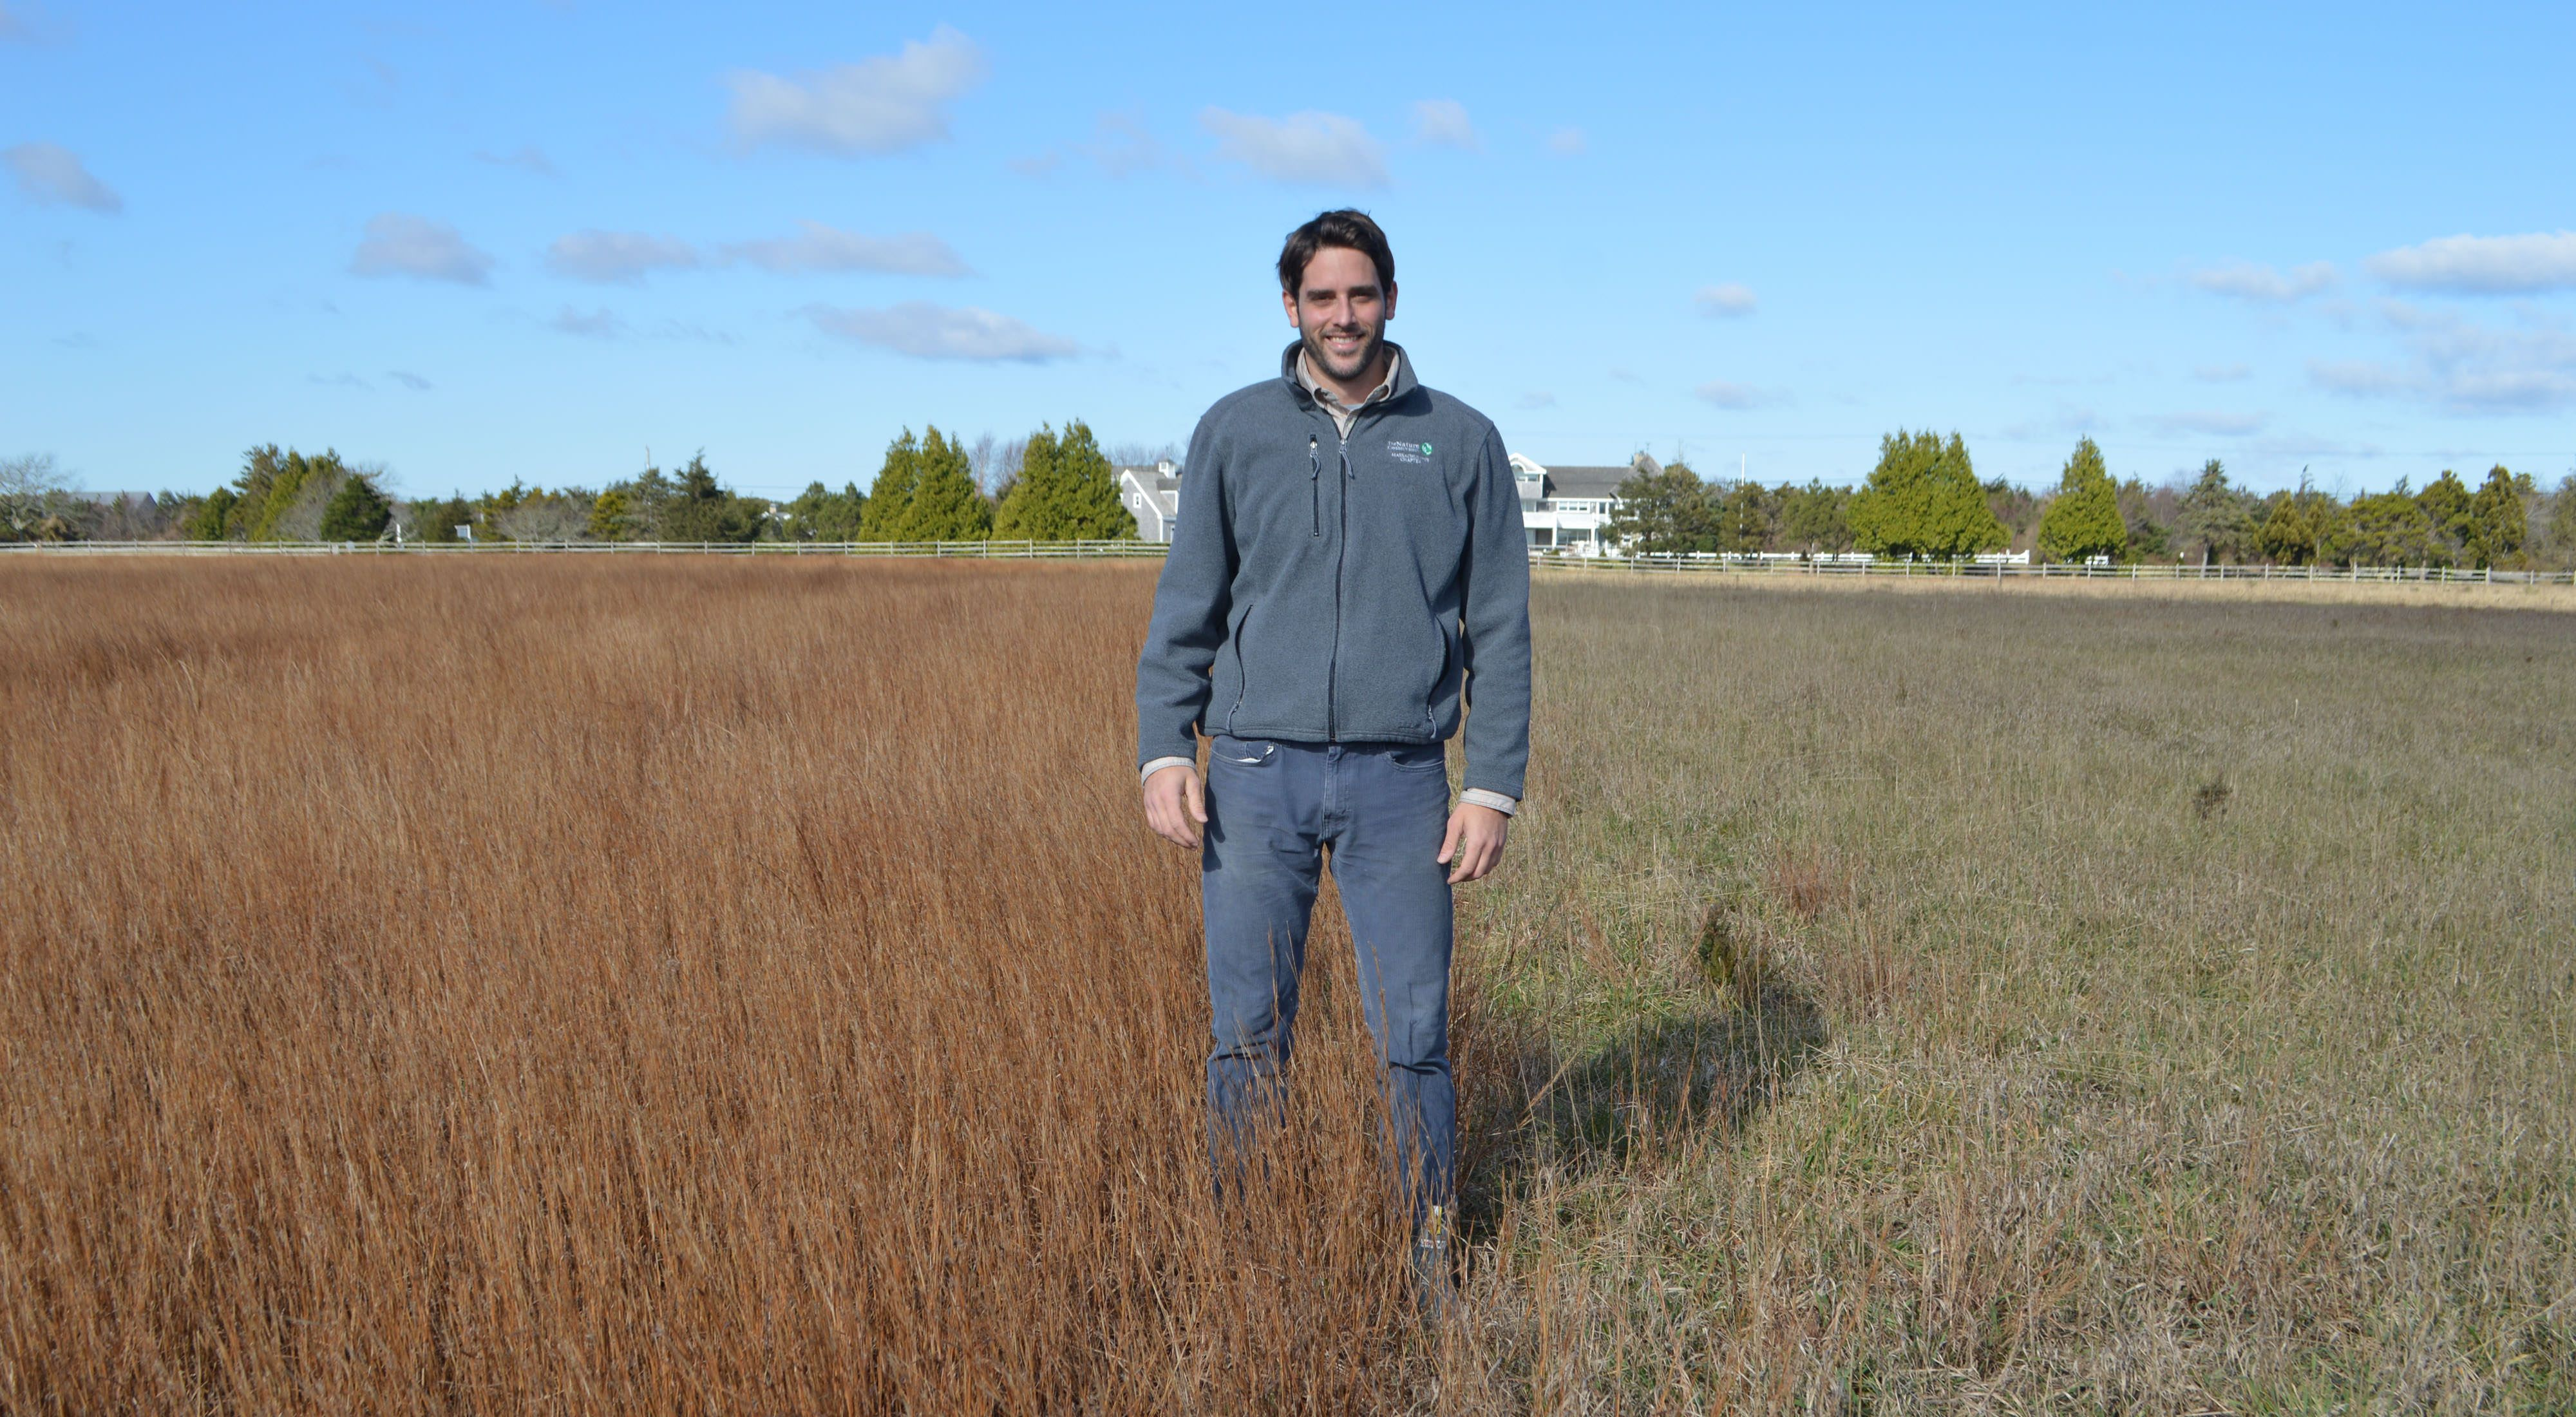 A man stands in a grassland on Martha's Vineyard, on the left side the grass is brown, on the right, it is green.